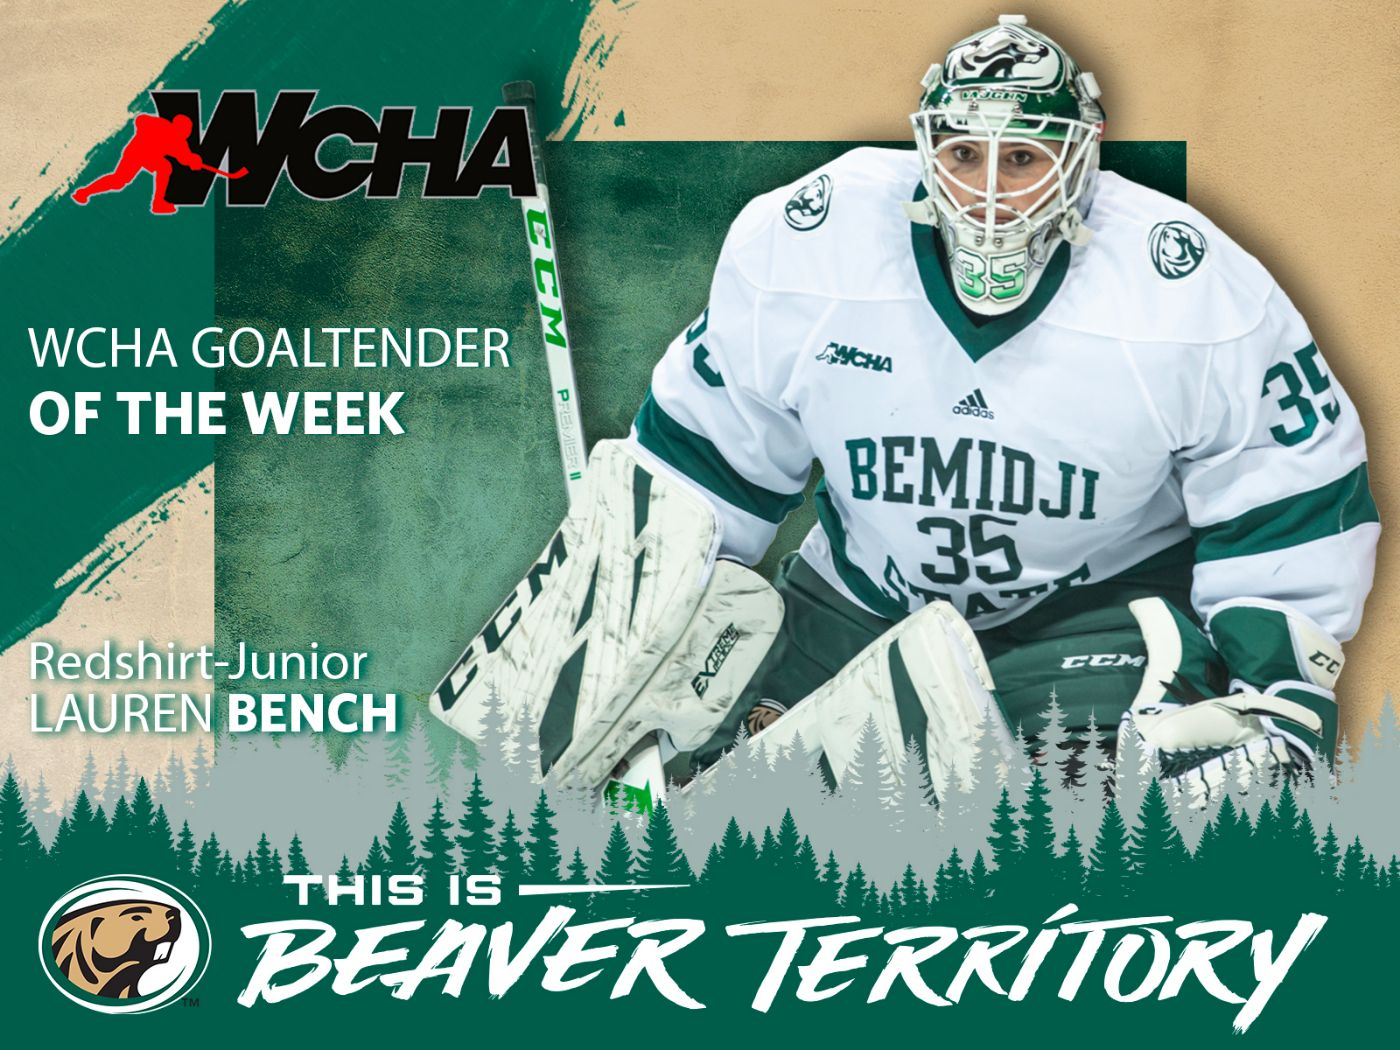 Bench tabbed as WCHA Goaltender of the Week